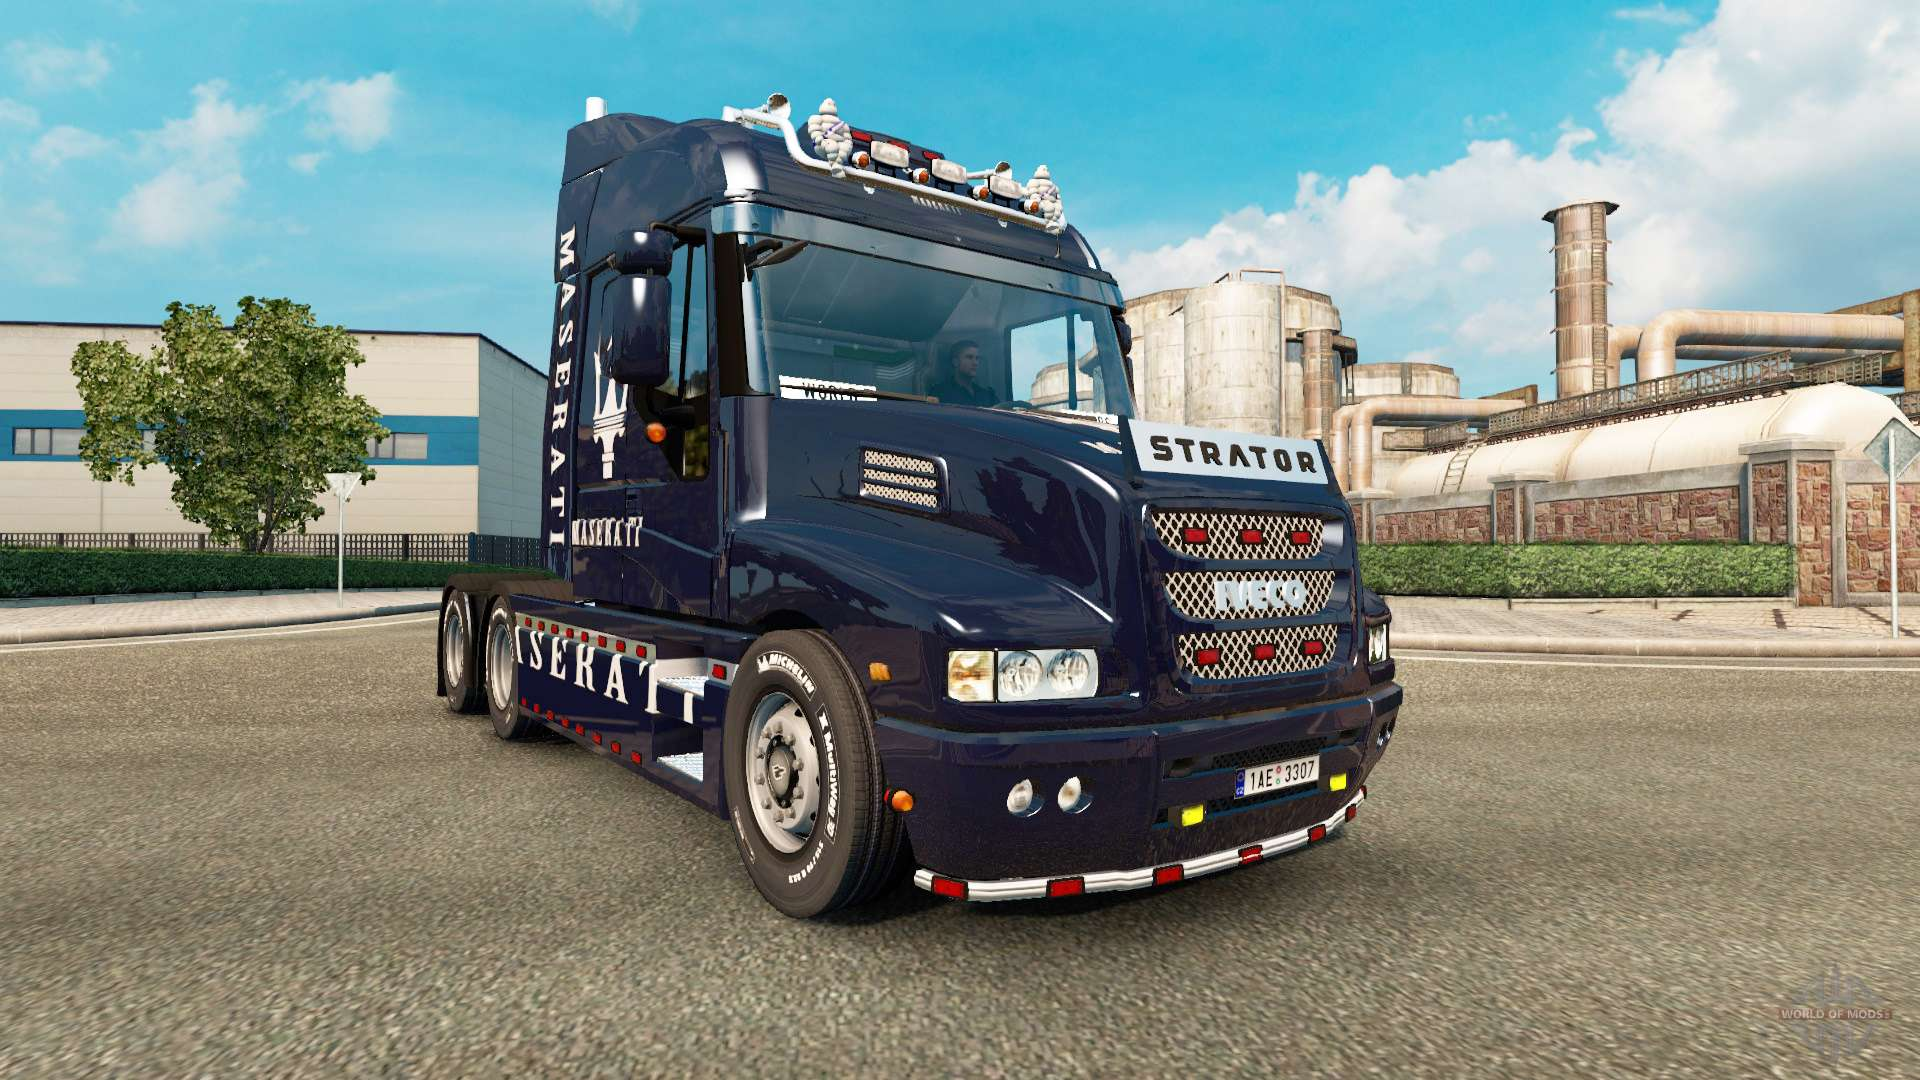 The skin of the Maserati on the truck Iveco Strator for ...